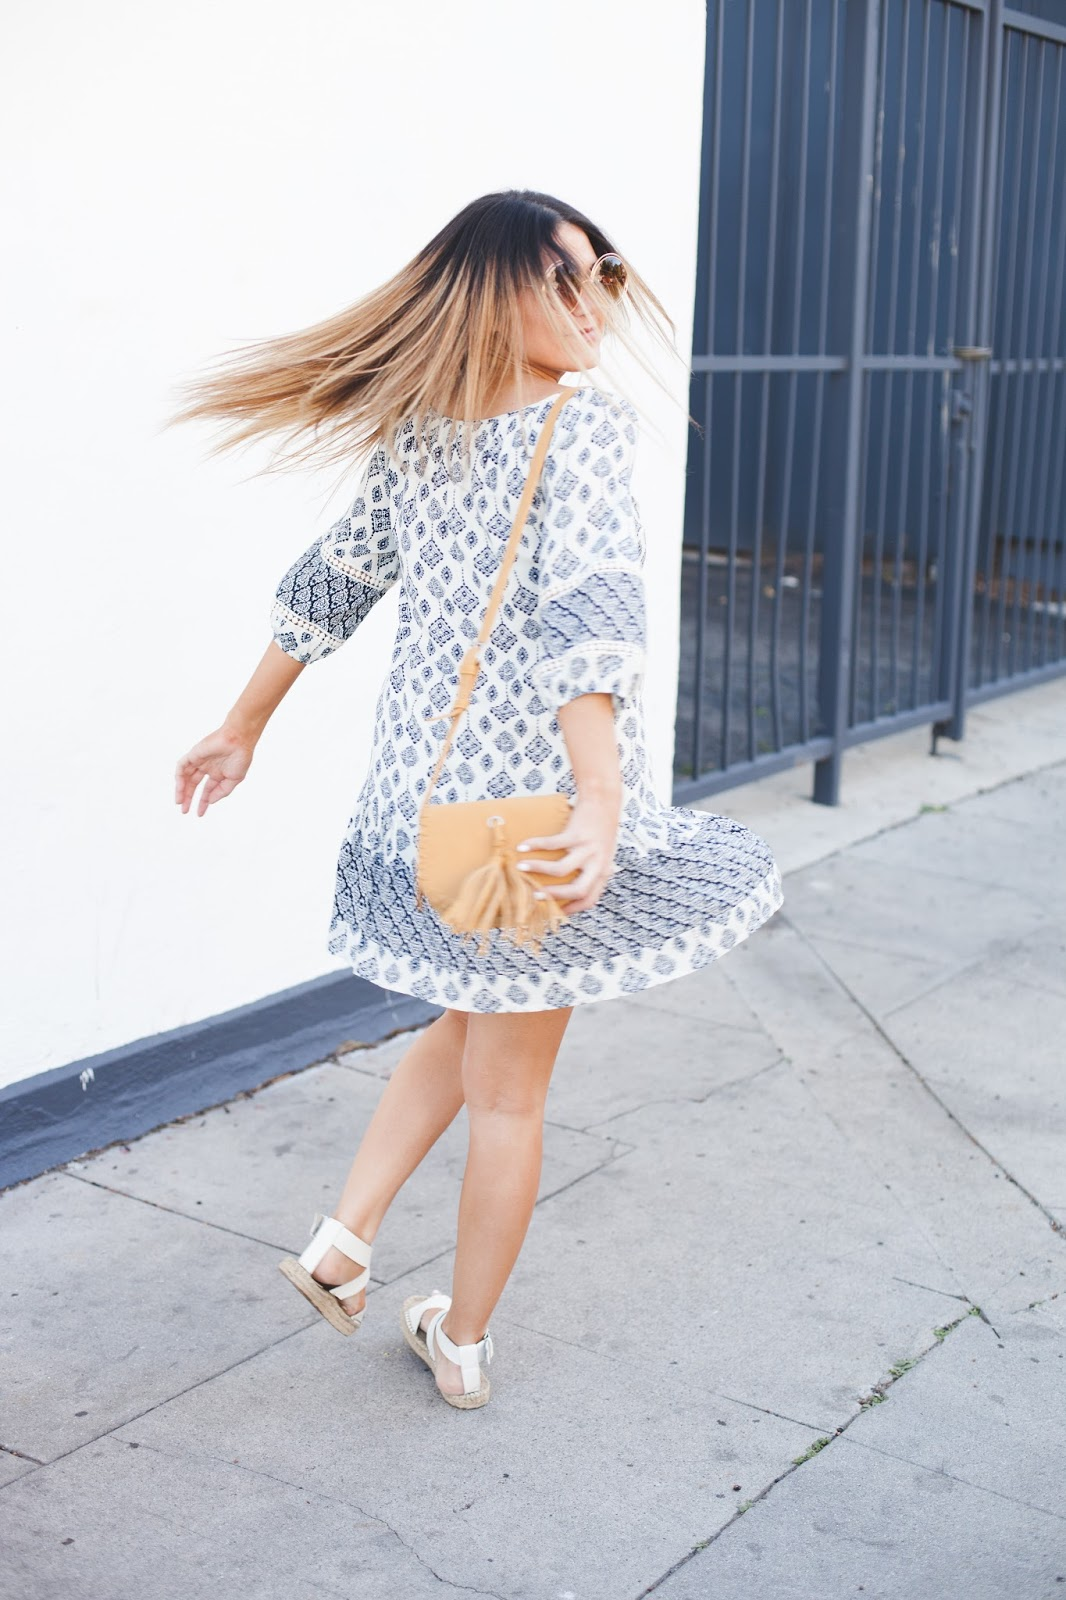 LA Blogger - My Cup of Chic